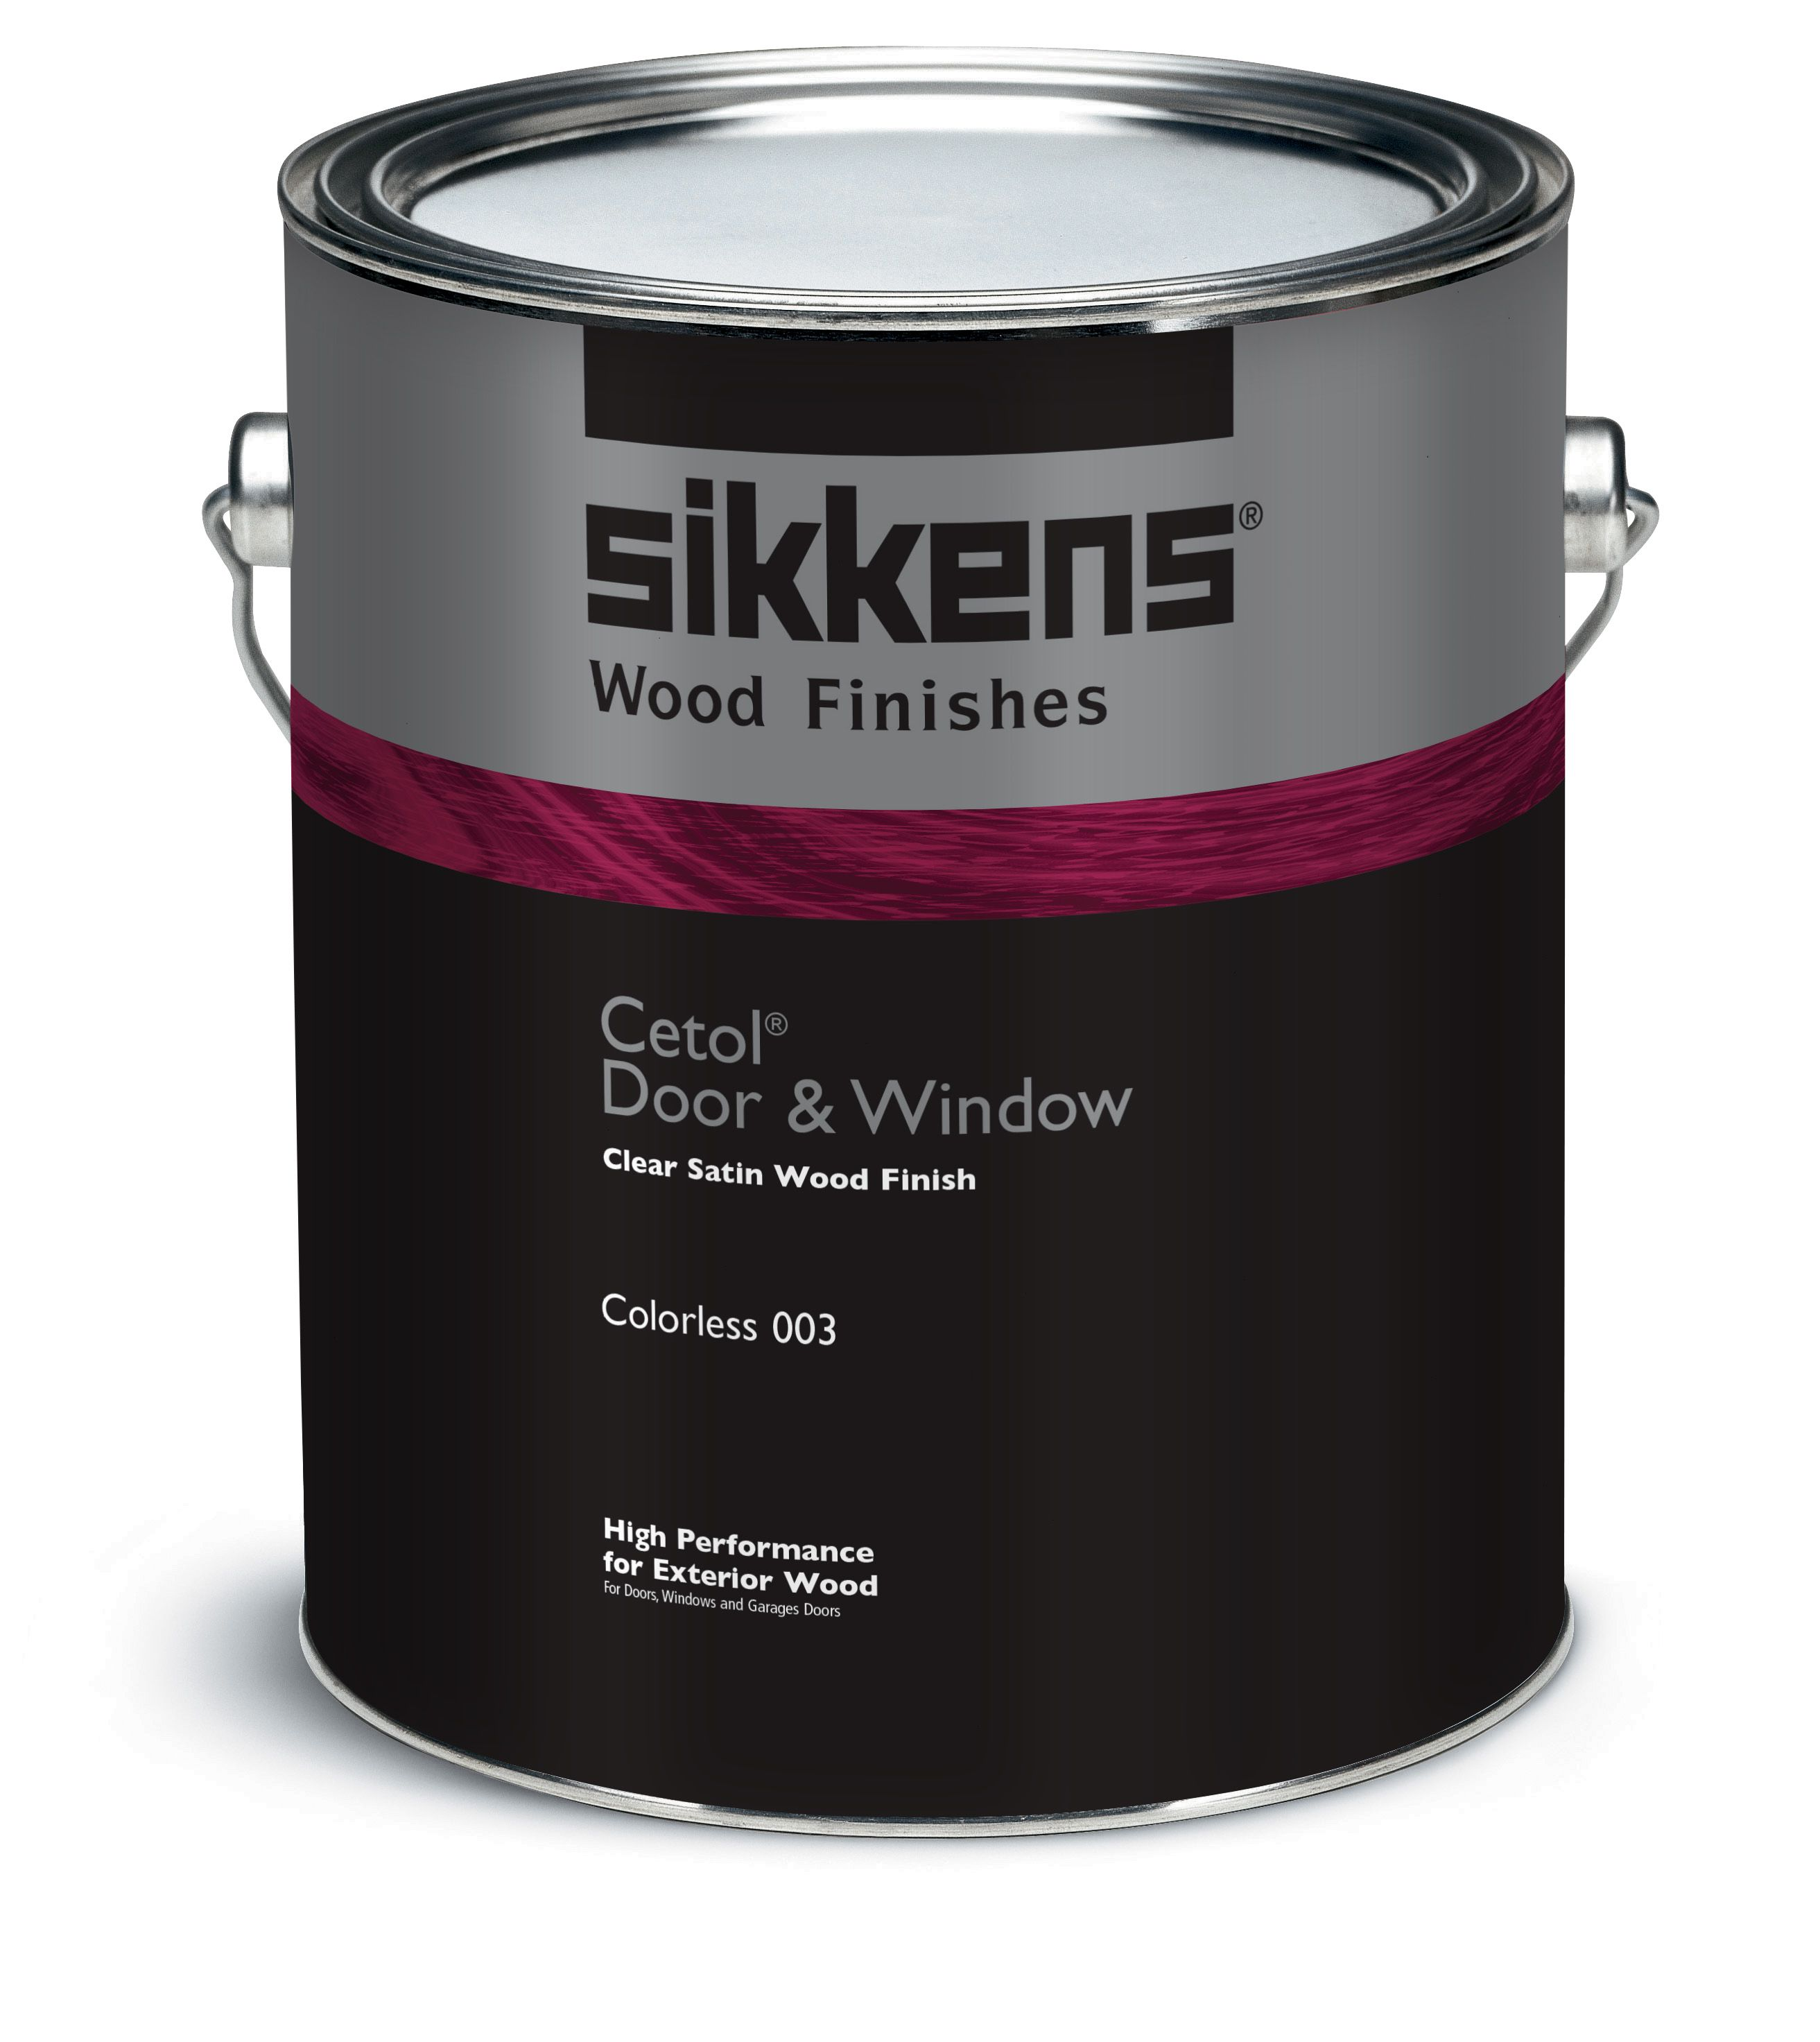 Cetol Door Window Exteriors Sikkens Clear Gloss Or Satin Use On Doors Windows Garage Doors Fiberglass D Log Homes Log Home Decorating Exterior Stain